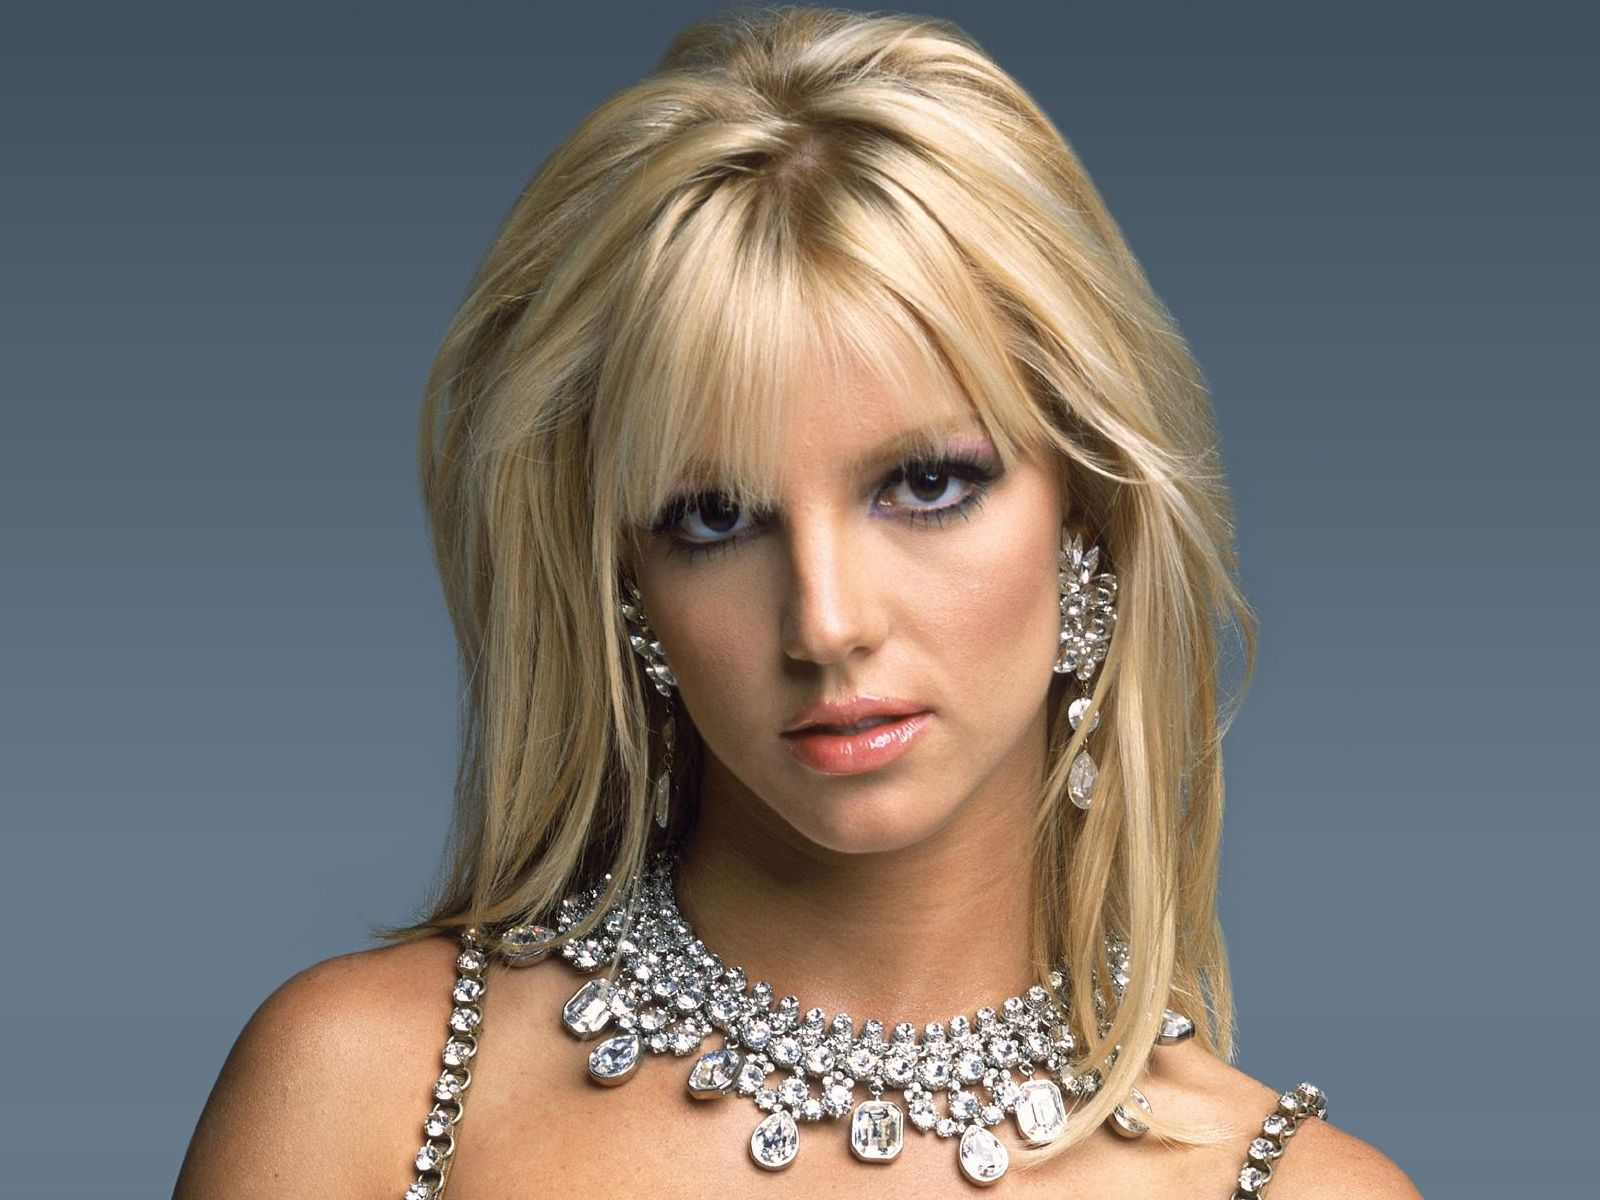 Britney Spears - Britney Spears Wallpaper (24888139) - Fanpop